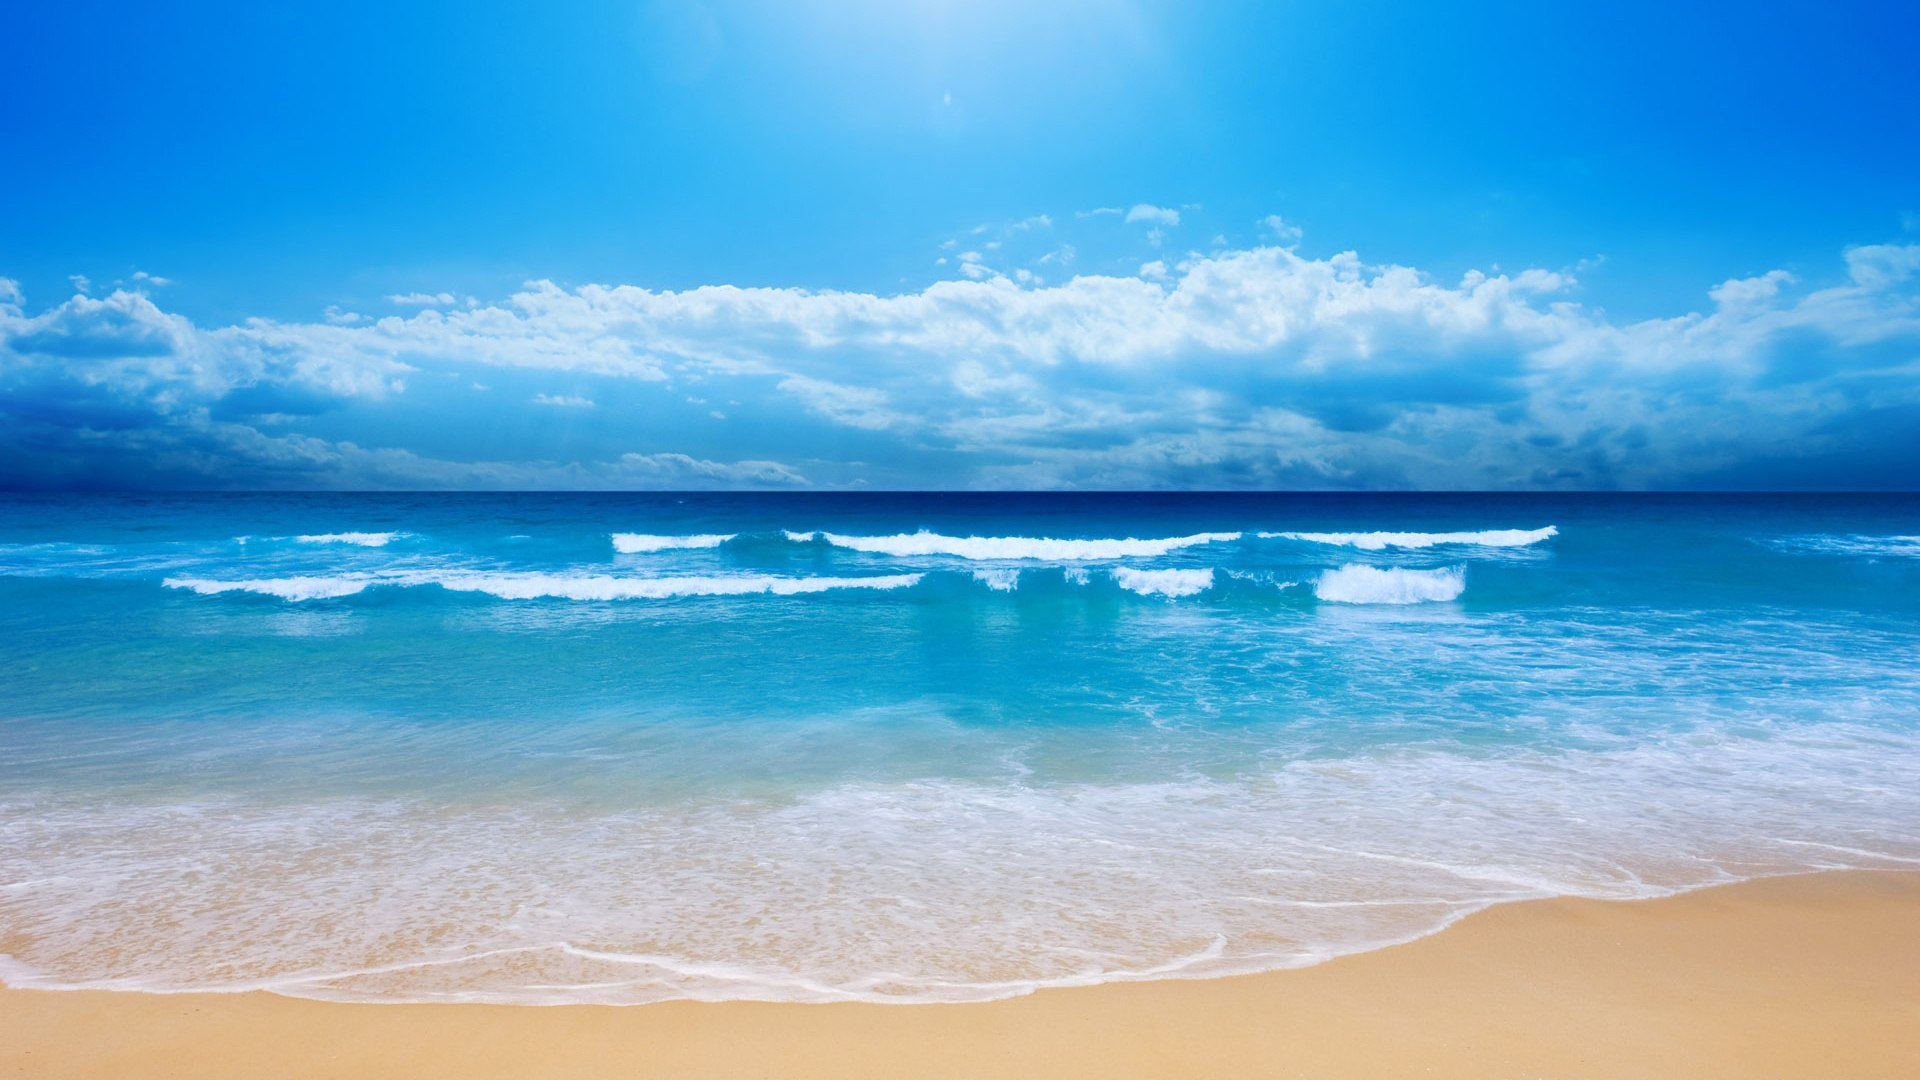 14421 download wallpaper Water, Landscape, Sky, Sea, Beach screensavers and pictures for free